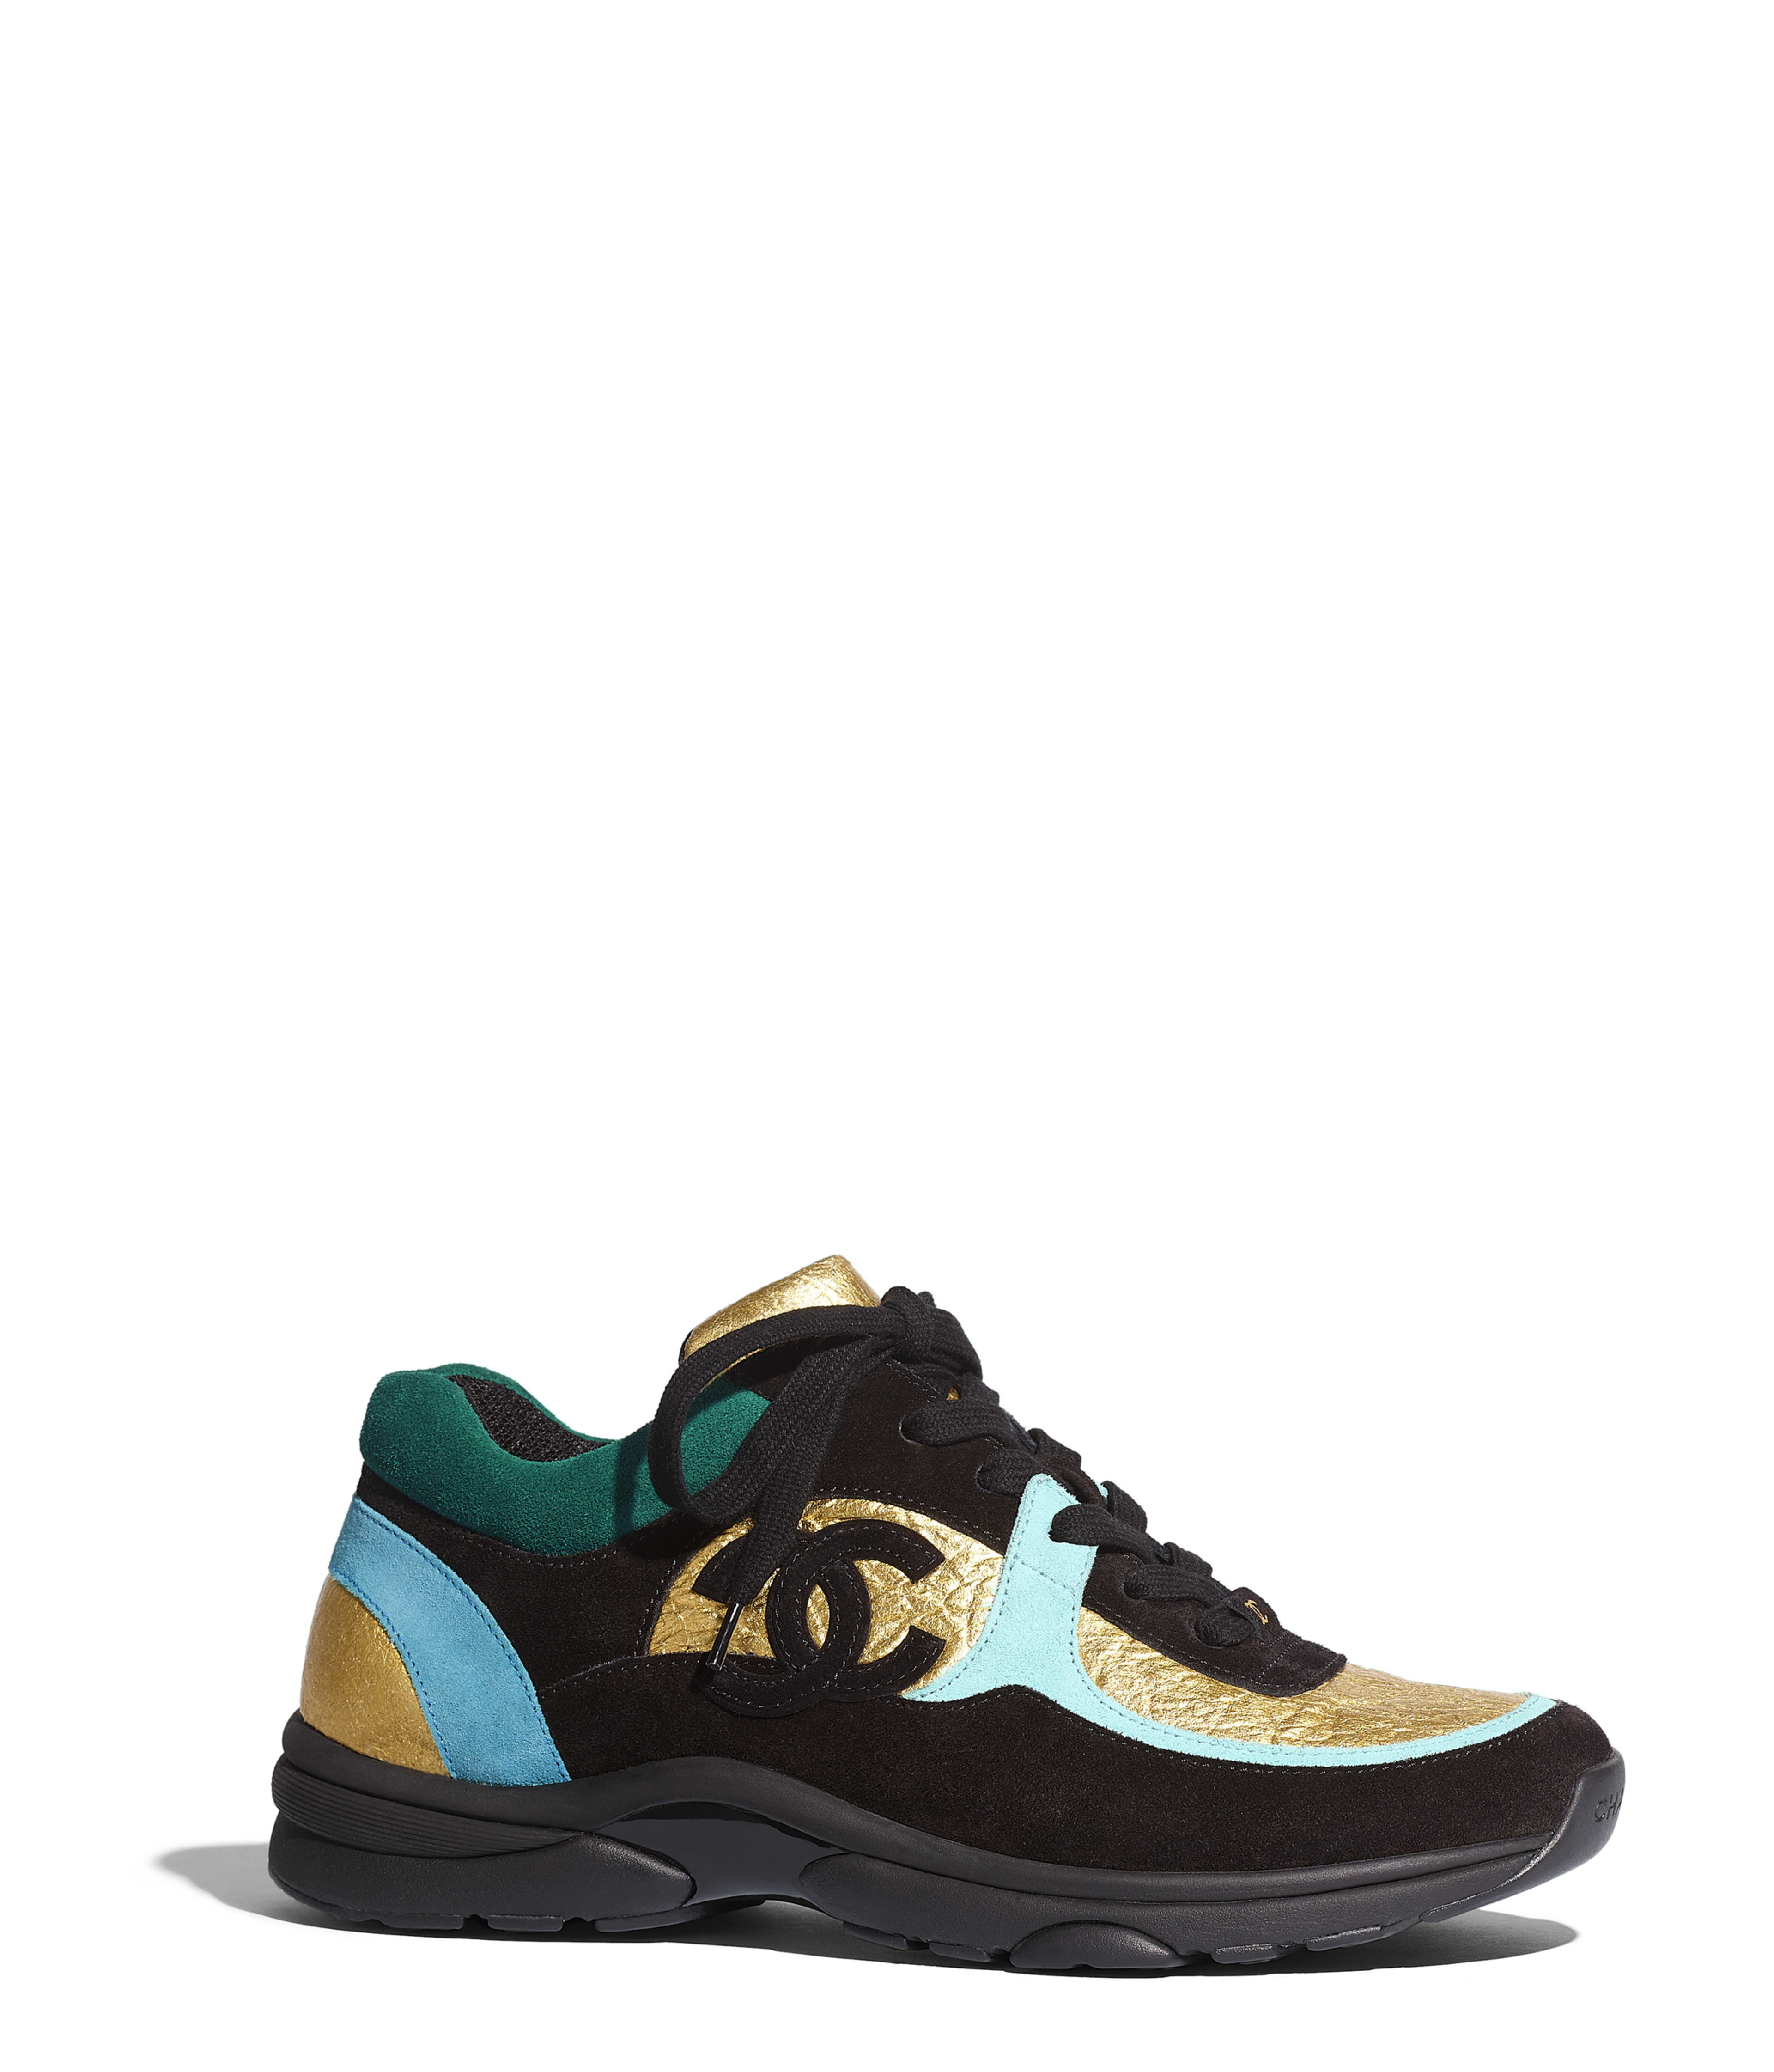 771b0e994 Sneakers Fabric & Suede Calfskin, Black, Turquoise & Gold Ref.  G34360Y53365K1701